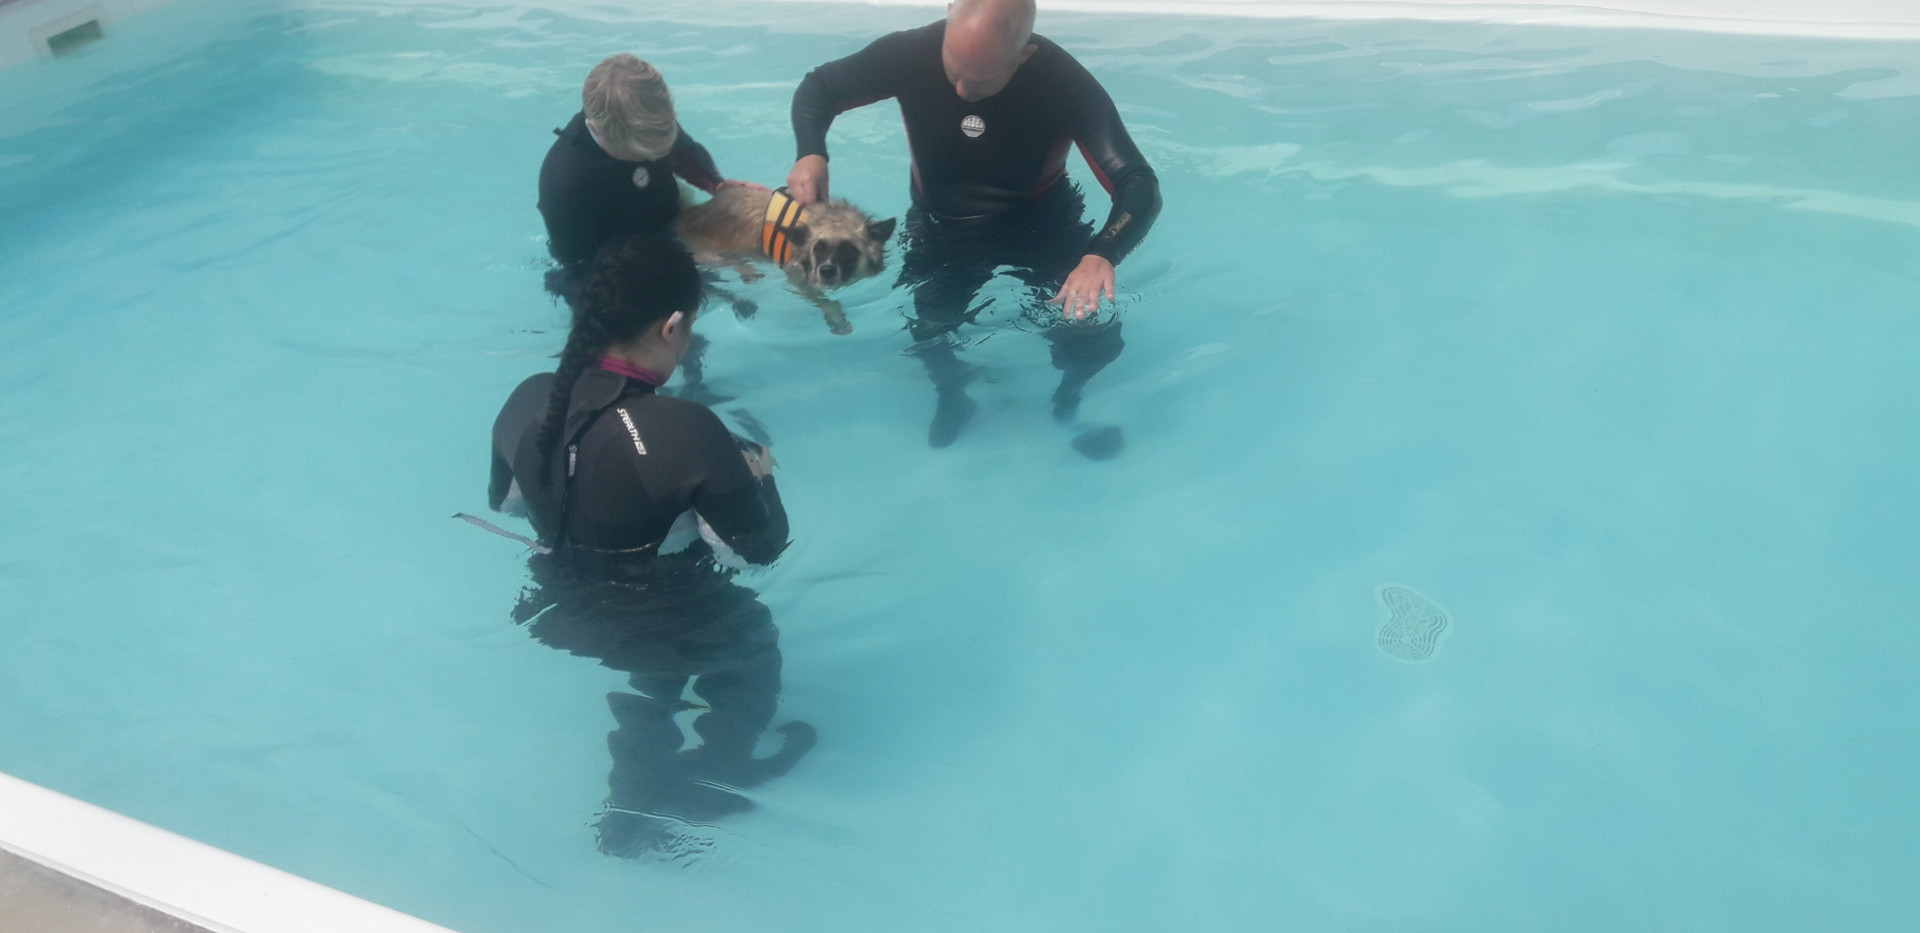 Held during his first swim to re-assure him and give Max a